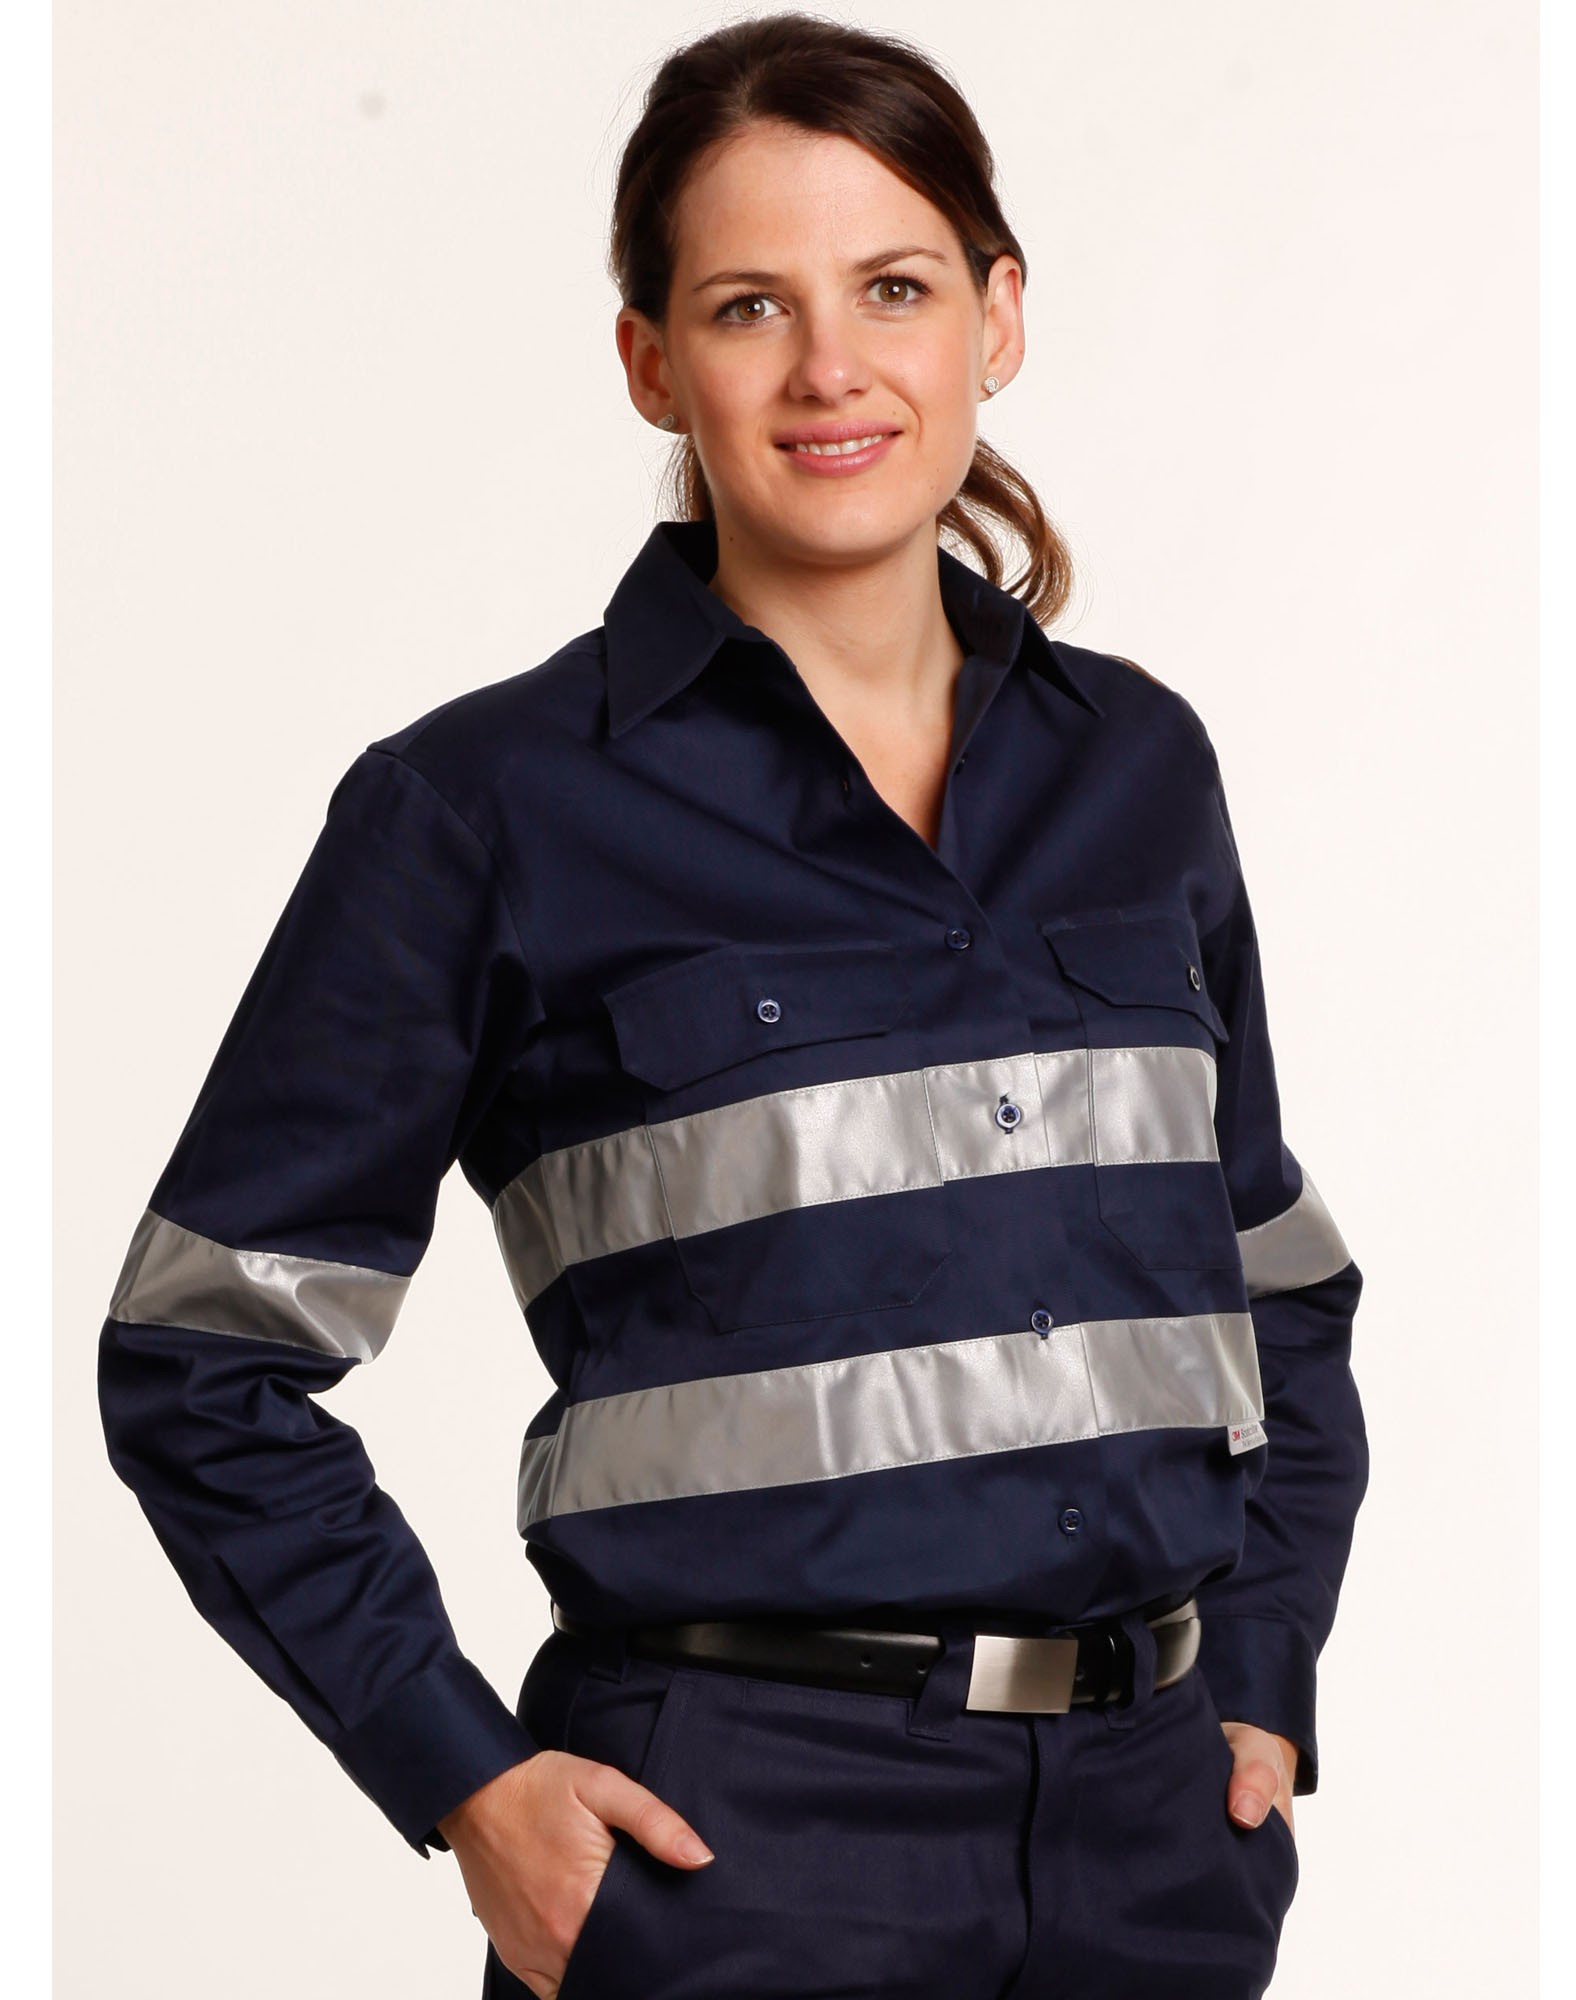 Winning Spirit Women's Cotton Drill Work Shirt With 3m Tapes